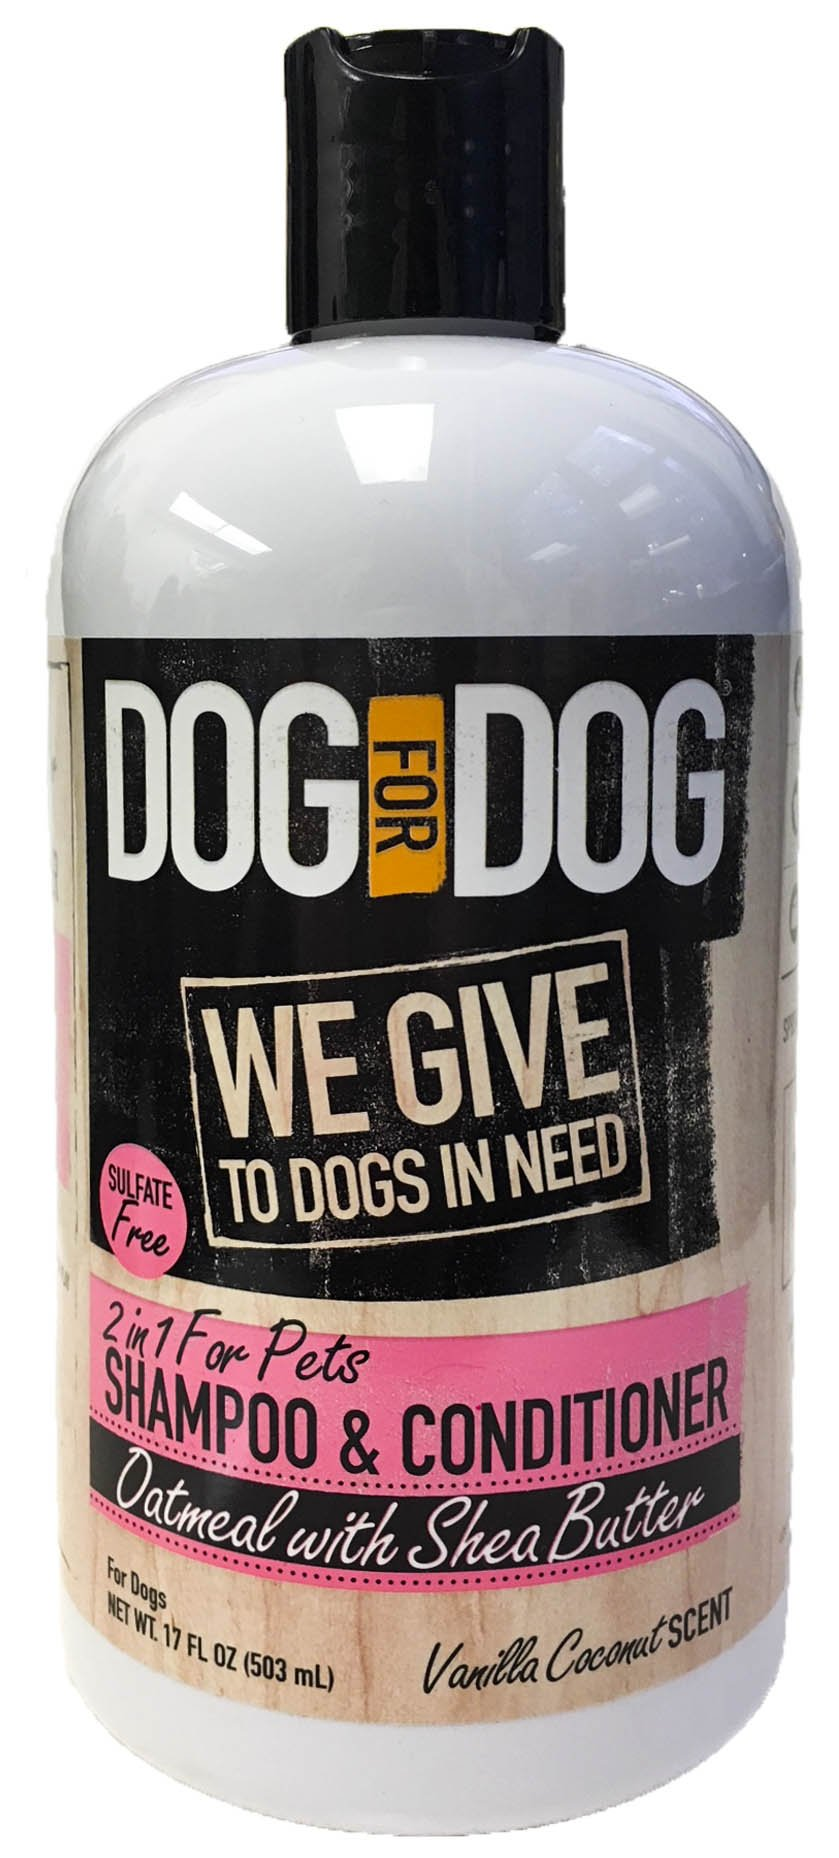 DOG for DOG Pet Oatmeal Dog Shampoo & Conditioner - Vanilla Coconut Scent - 2 in 1 for Dogs- Oatmeal with Shea Butter